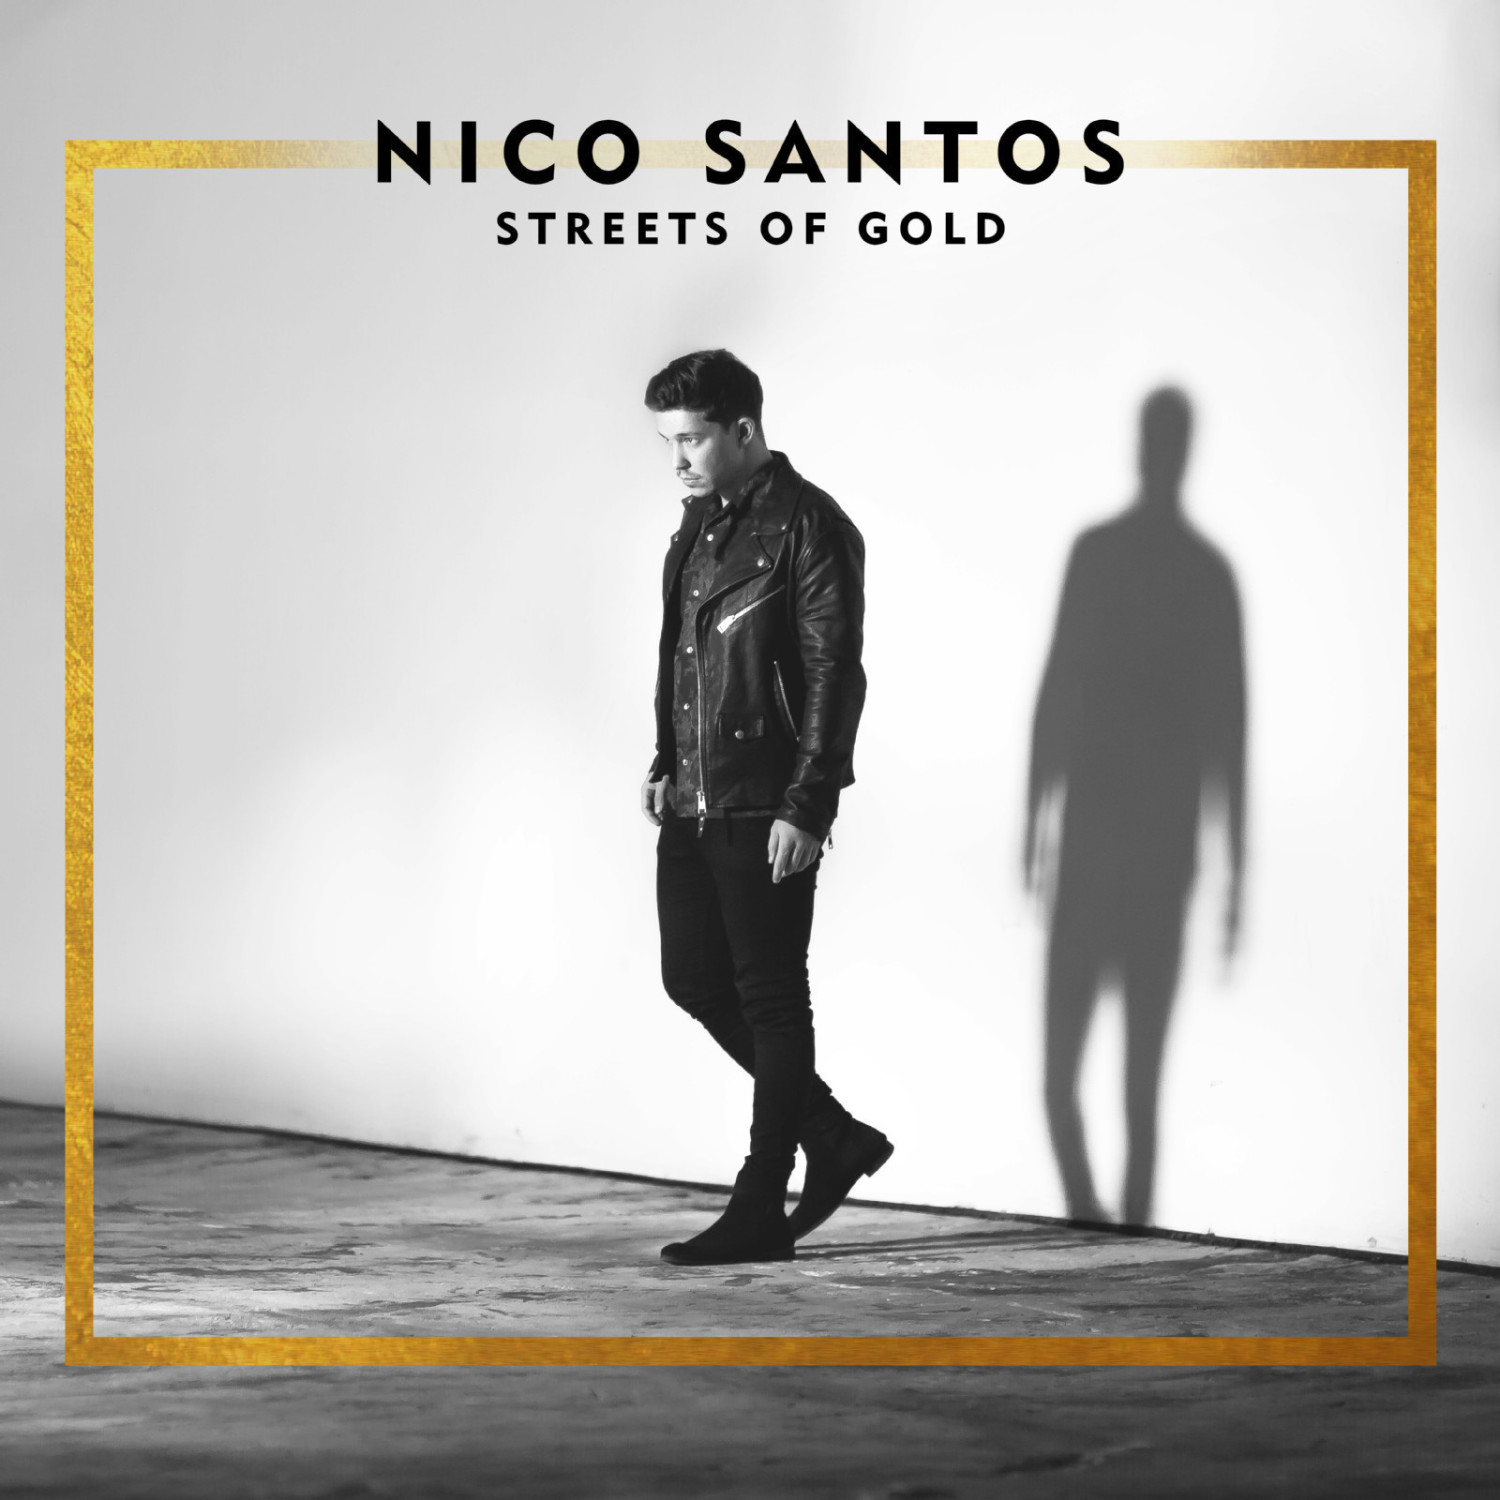 Nico Santos - Streets of Gold (CD)